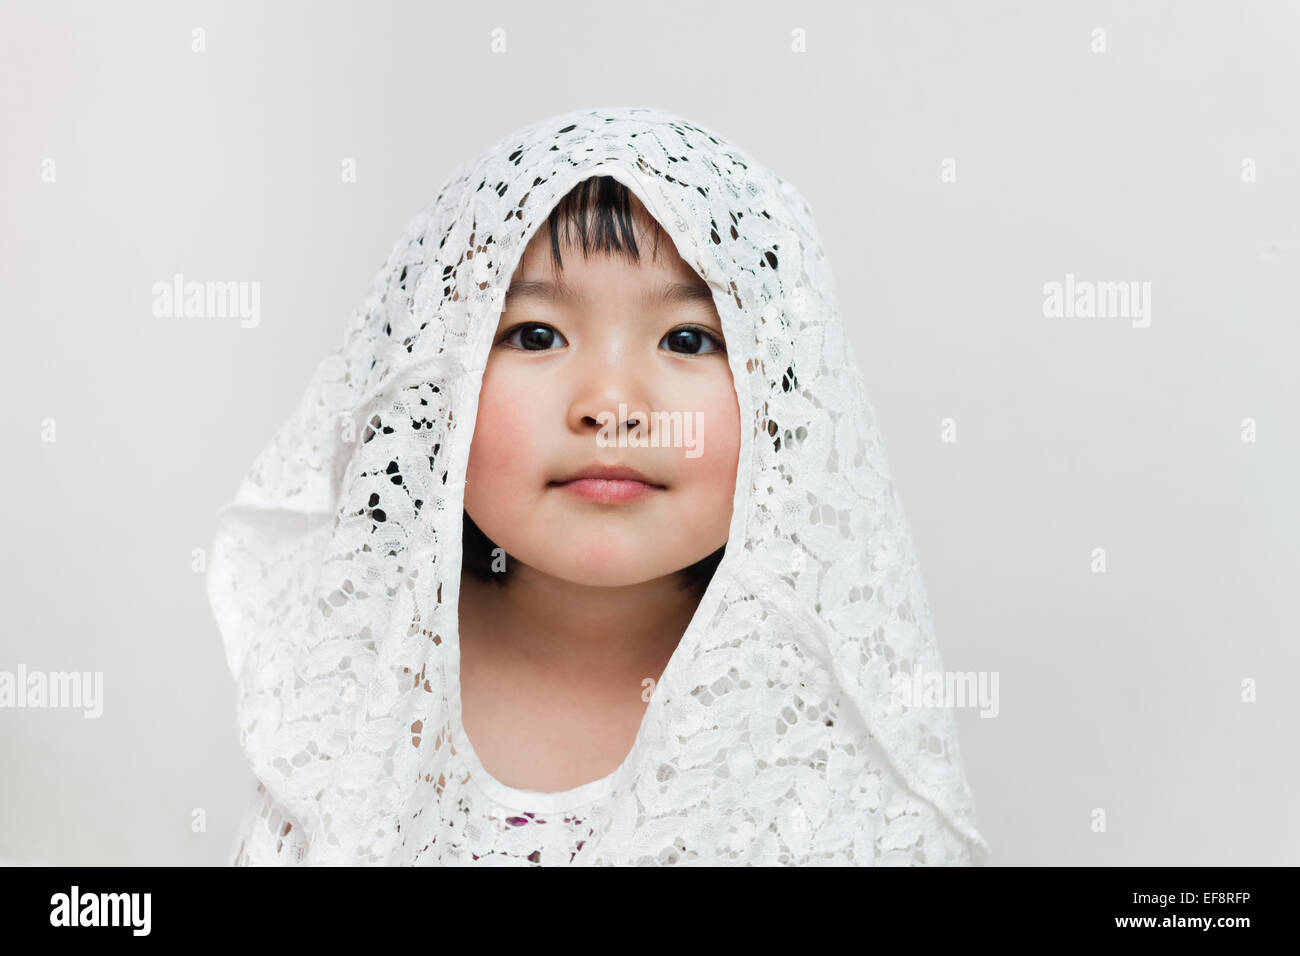 Australia, Melbourne, Portrait of young girl in lace hood - Stock Image